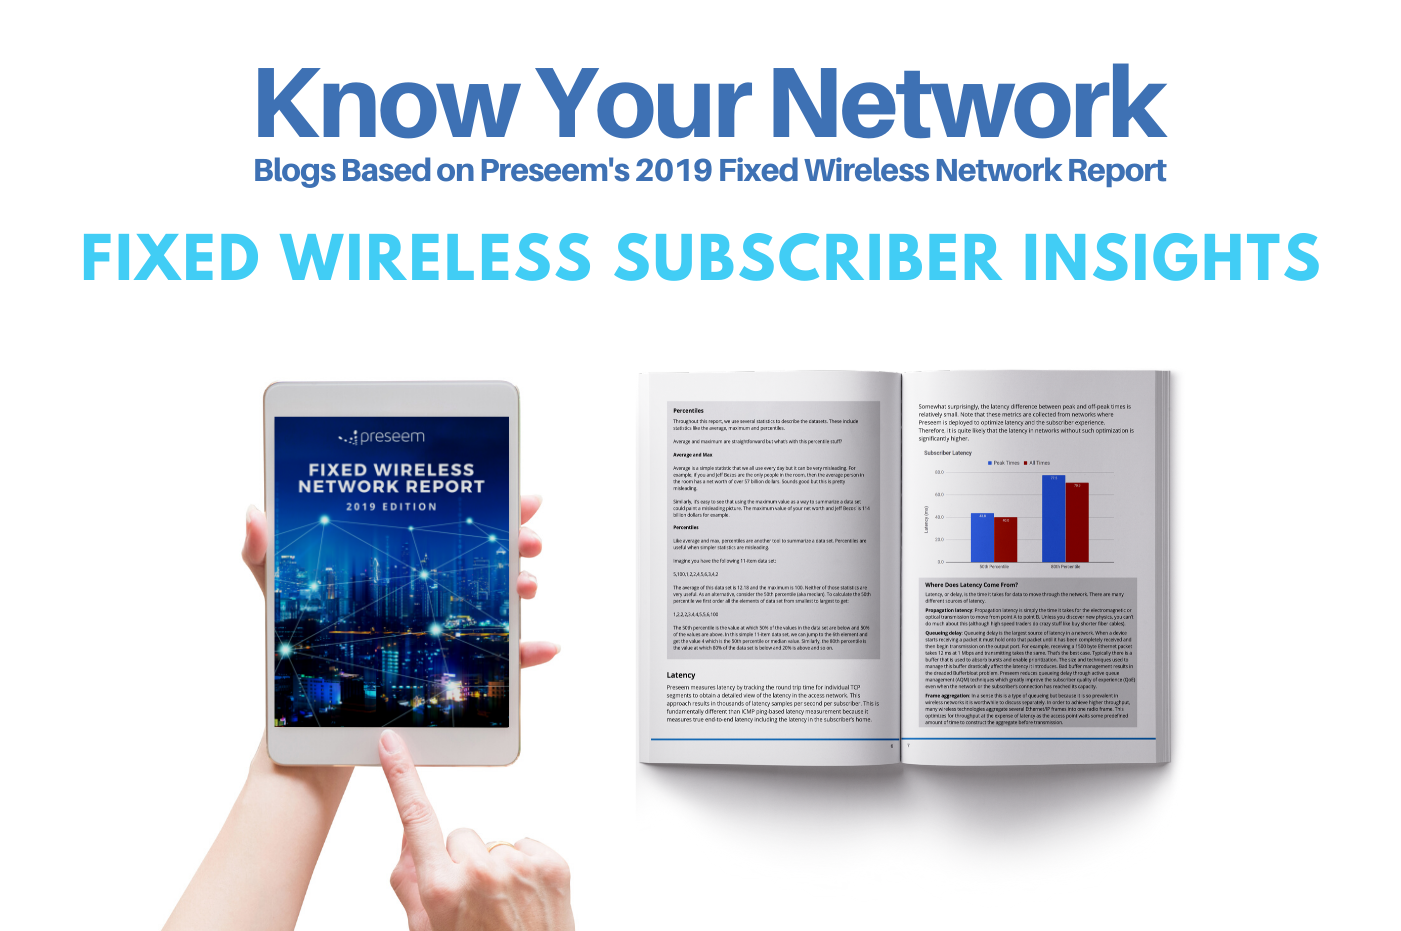 Fixed Wireless Subscriber Insights 2019